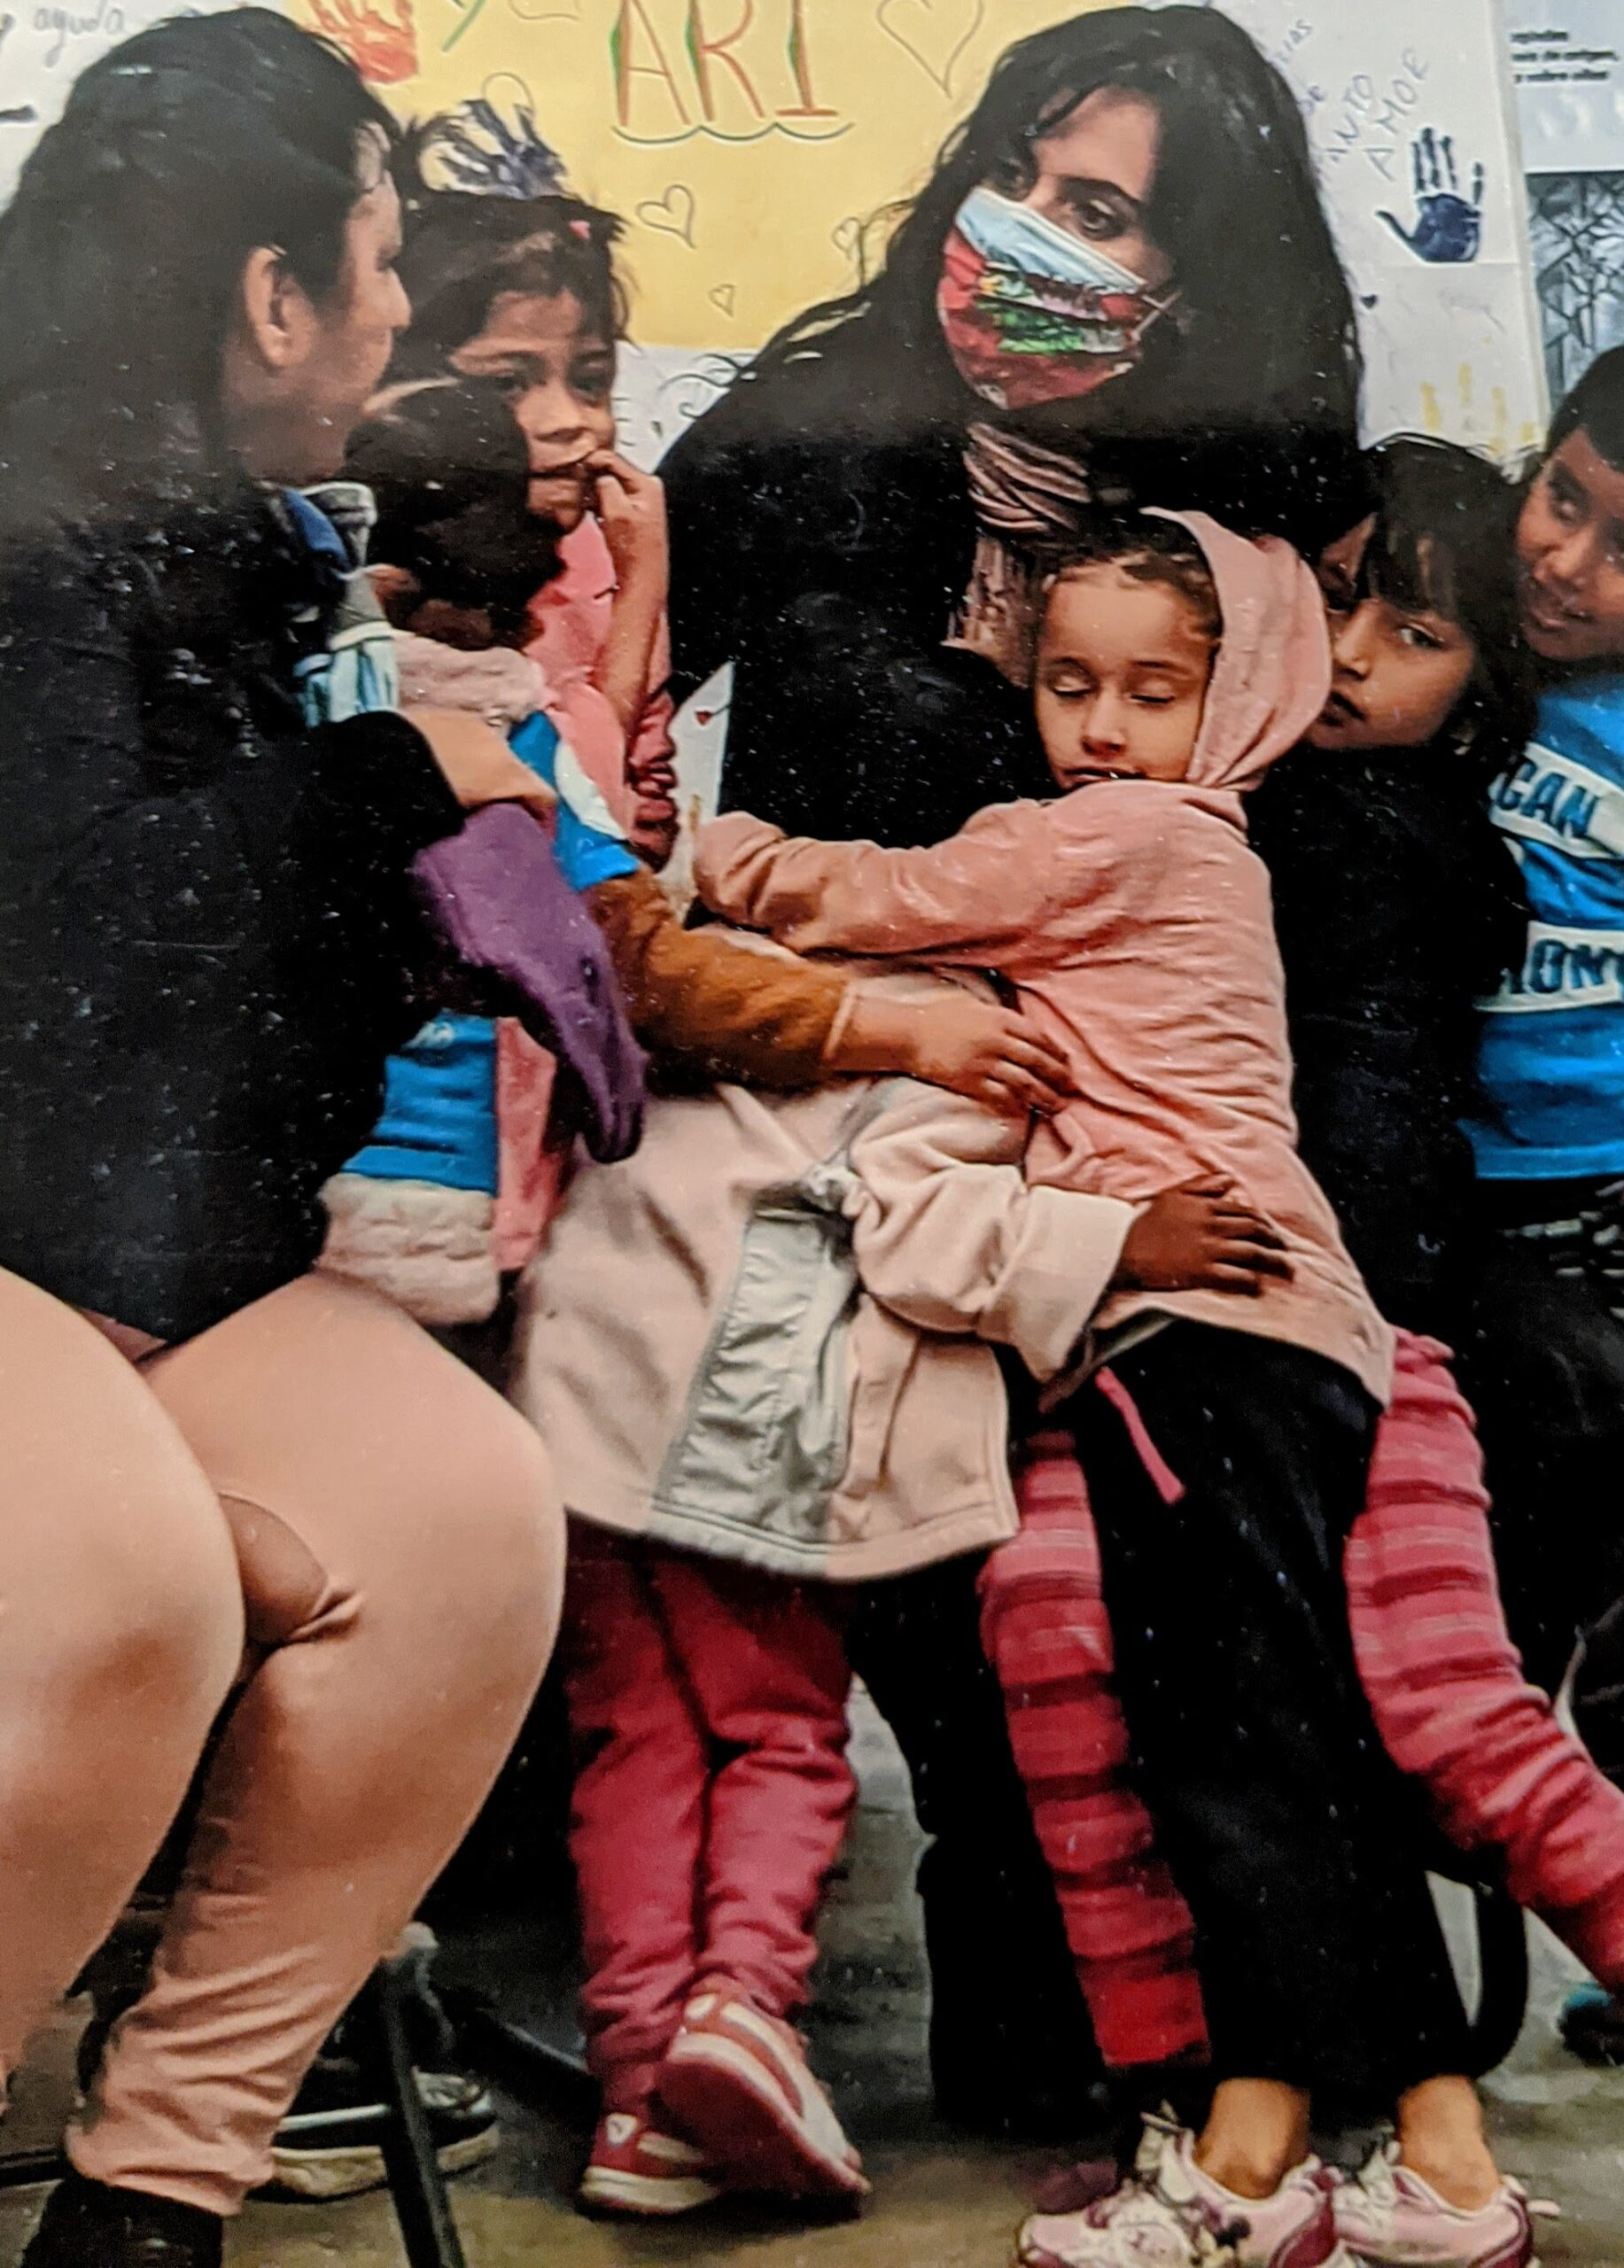 Refugee children need your support!